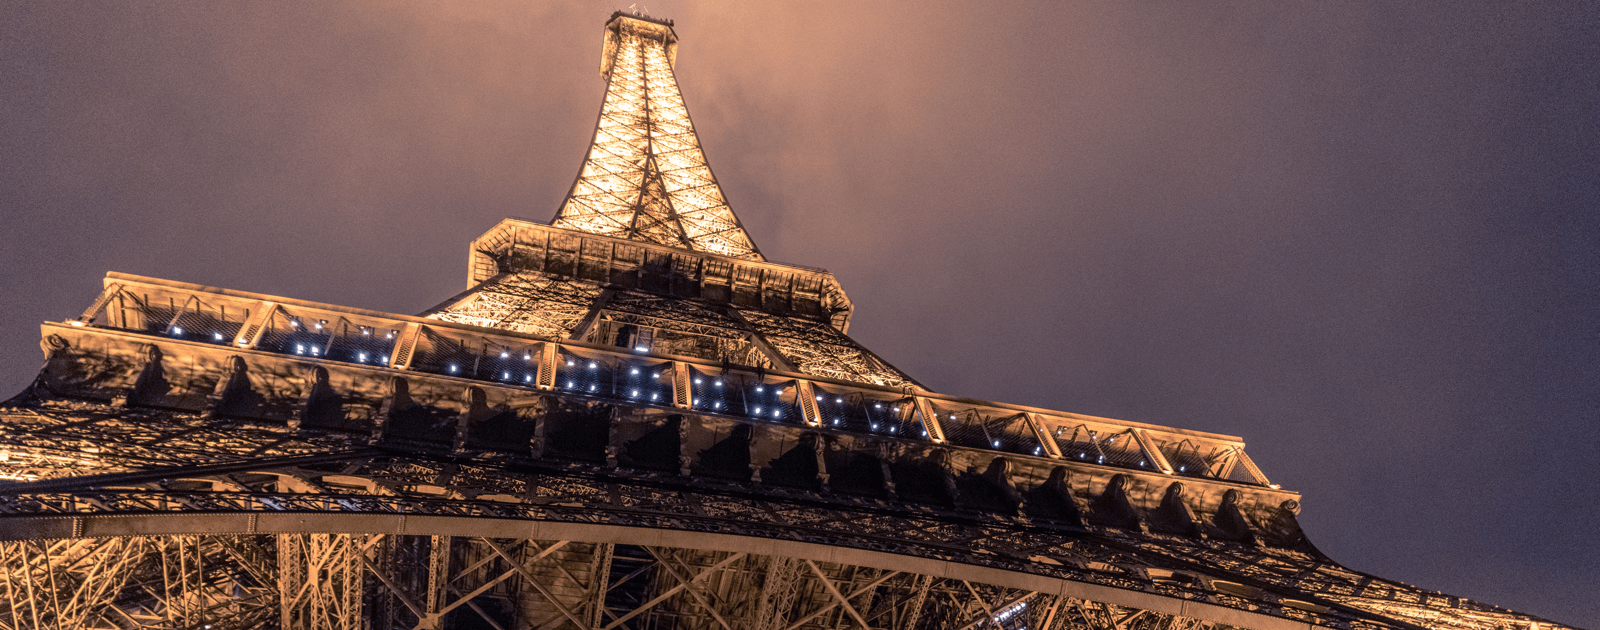 Image of the Eiffel Tower in Paris, where Apple will host a developer workshop.